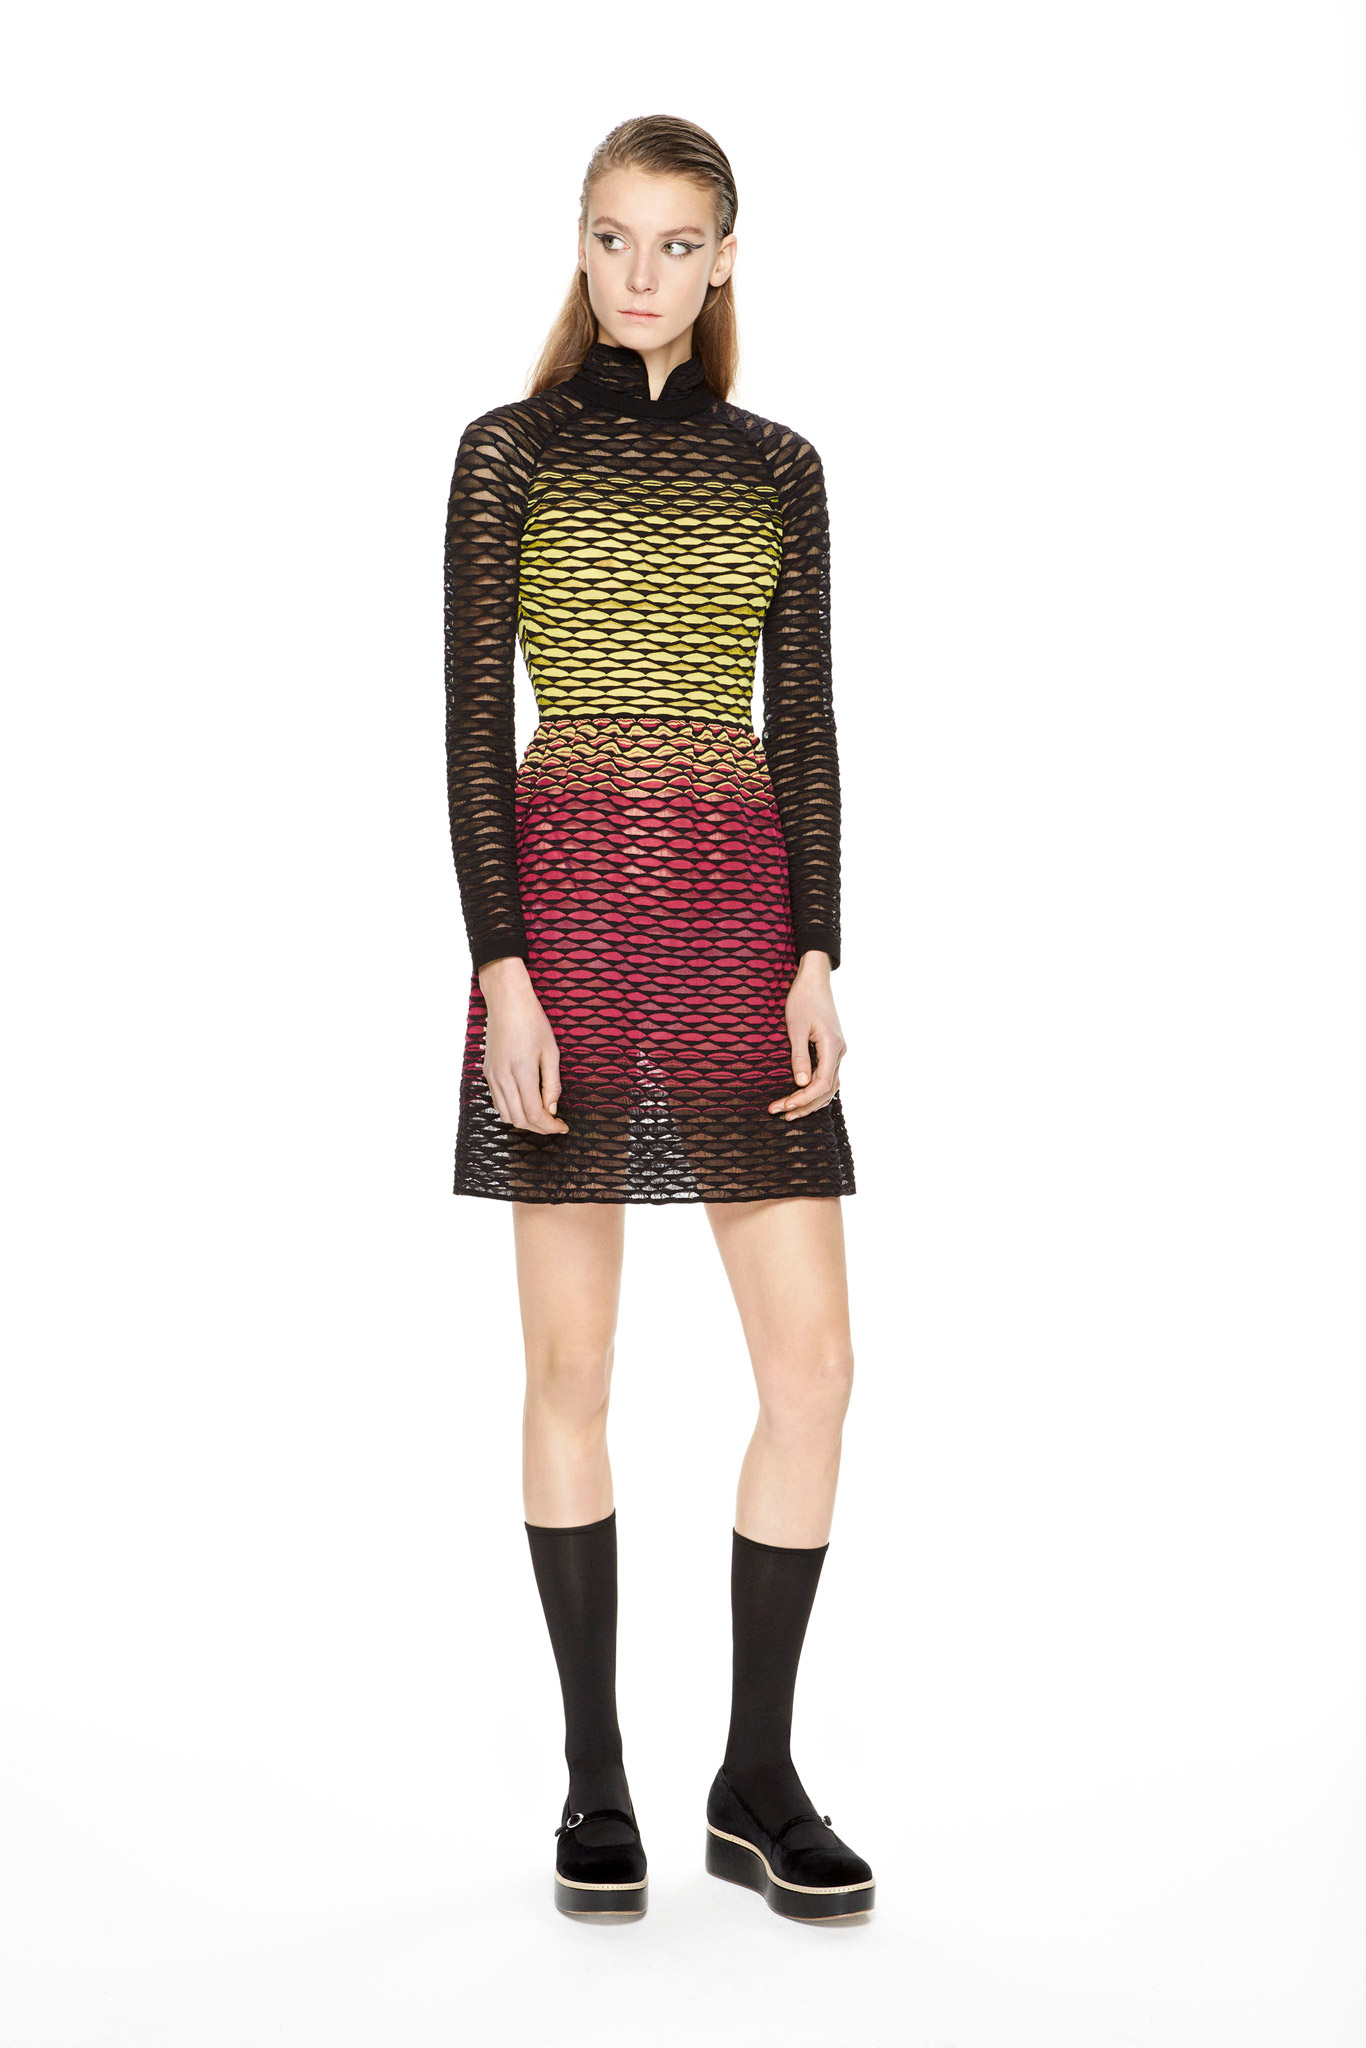 M Missoni Ombre Dress Fall 2015